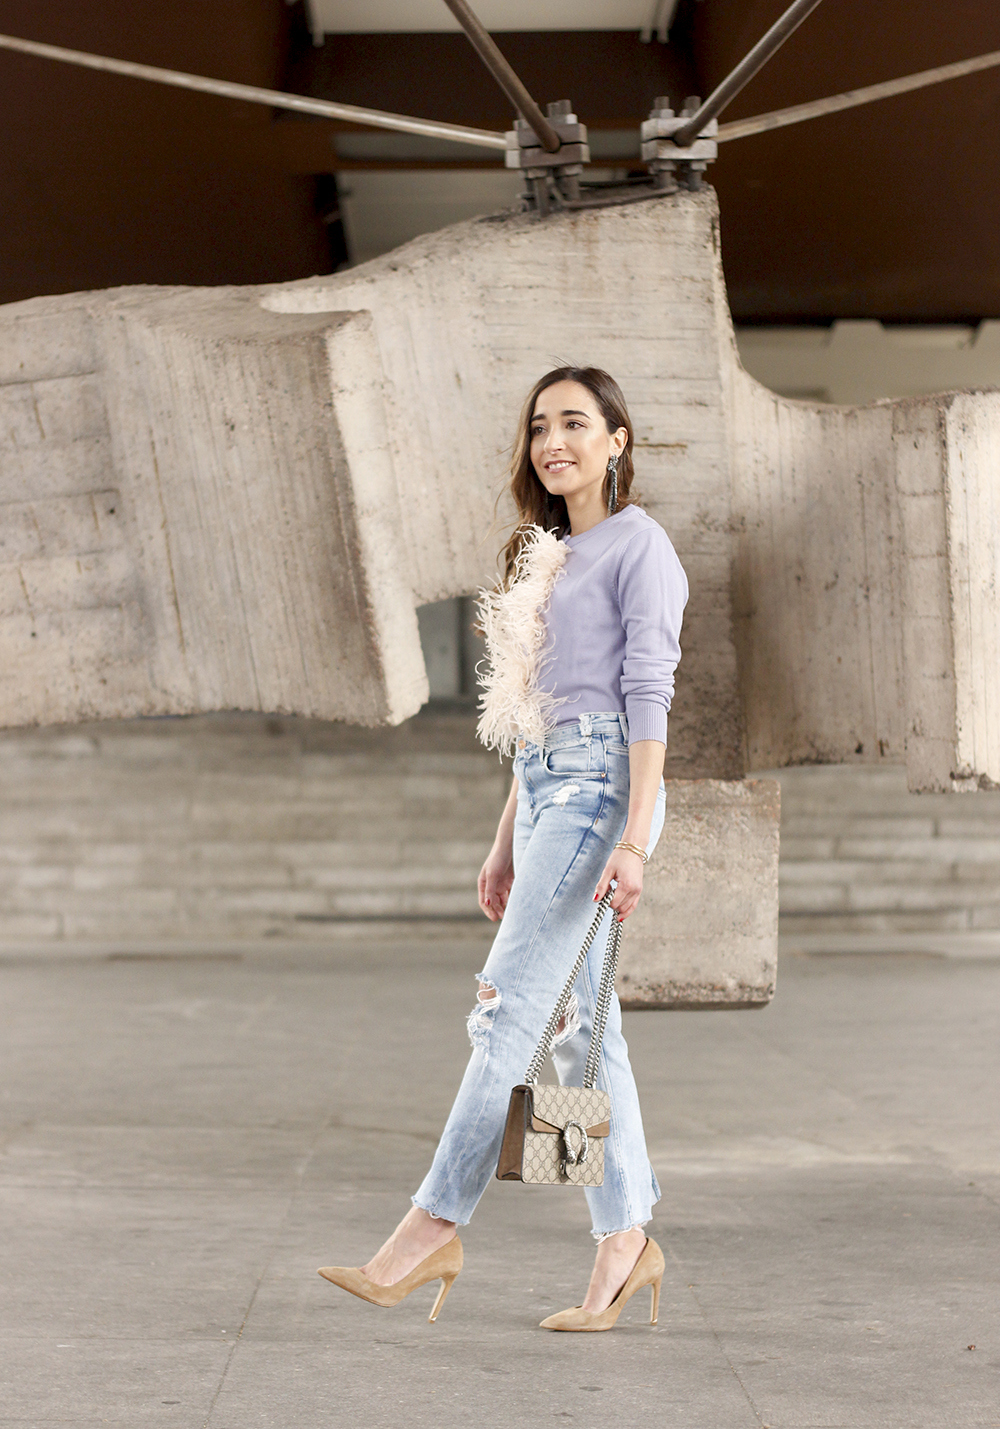 lavender sweater ripped jeans gucci bag nude heels casual street style casual outfit 201915